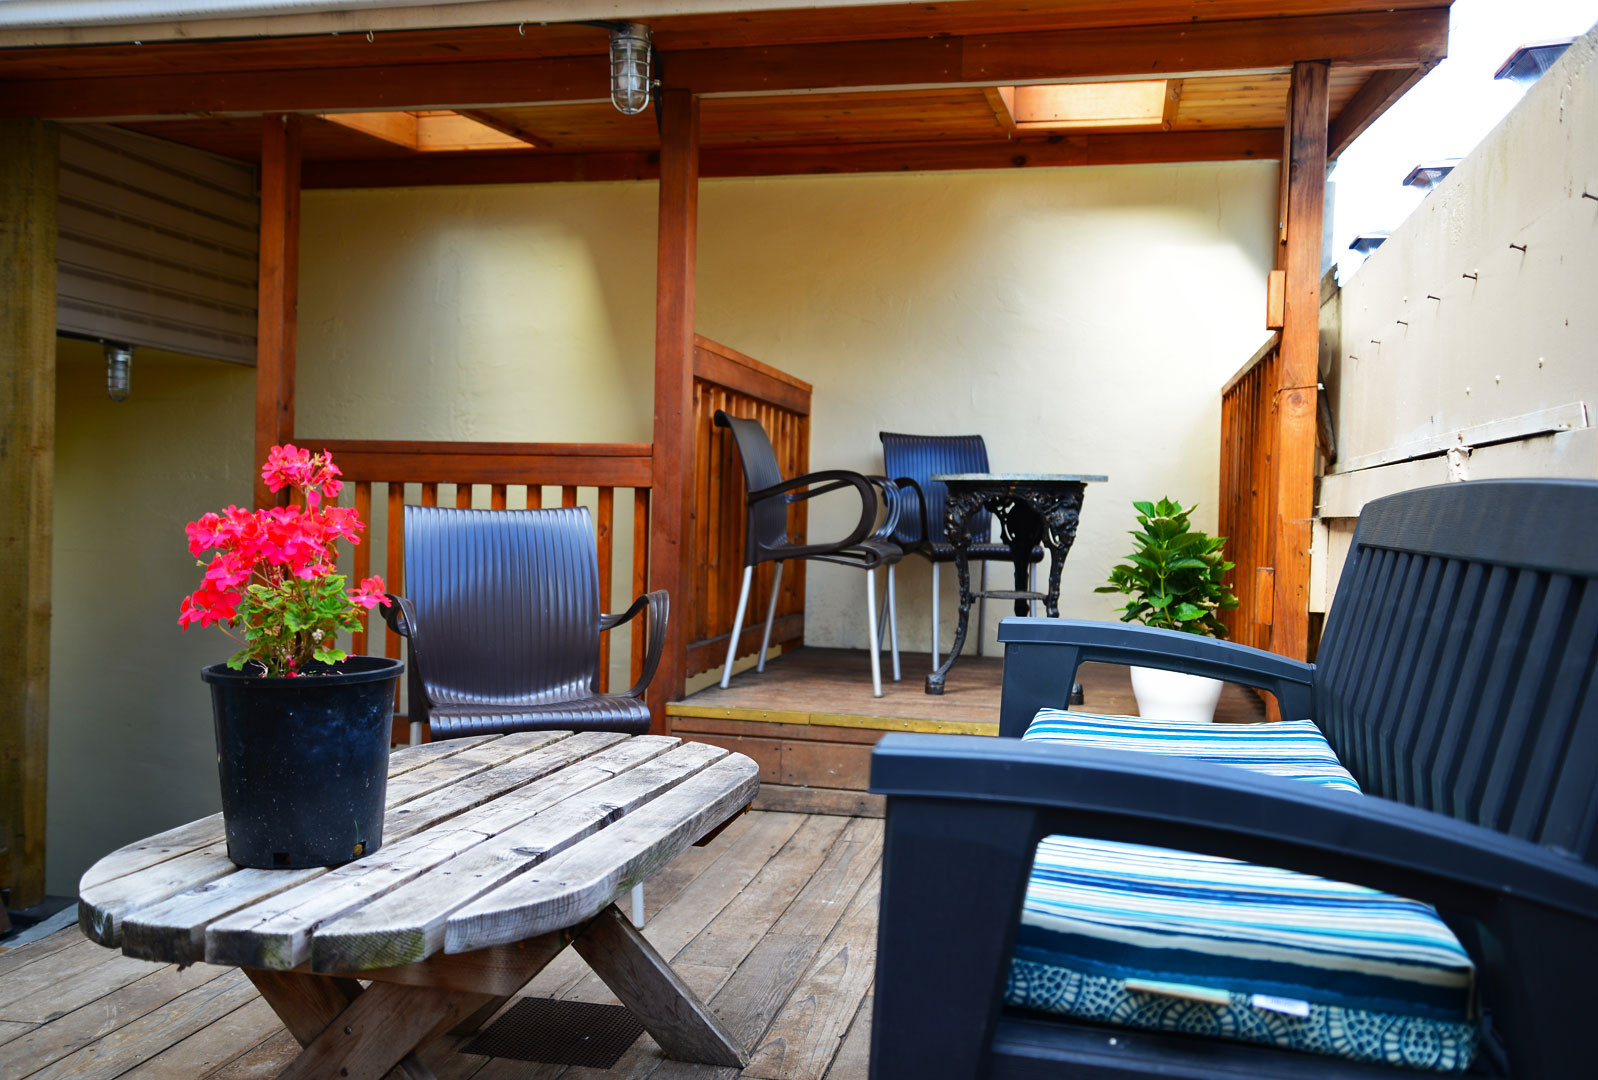 vancouver-guesthouse-external-patio.jpg